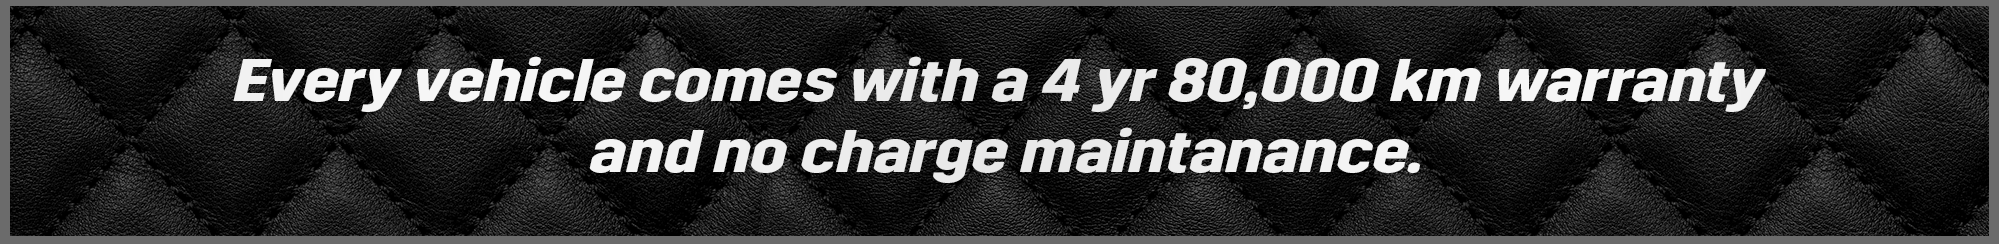 Every vehicle comes with 4Year/80,000 warranty and world calss vehicle delivery to your door